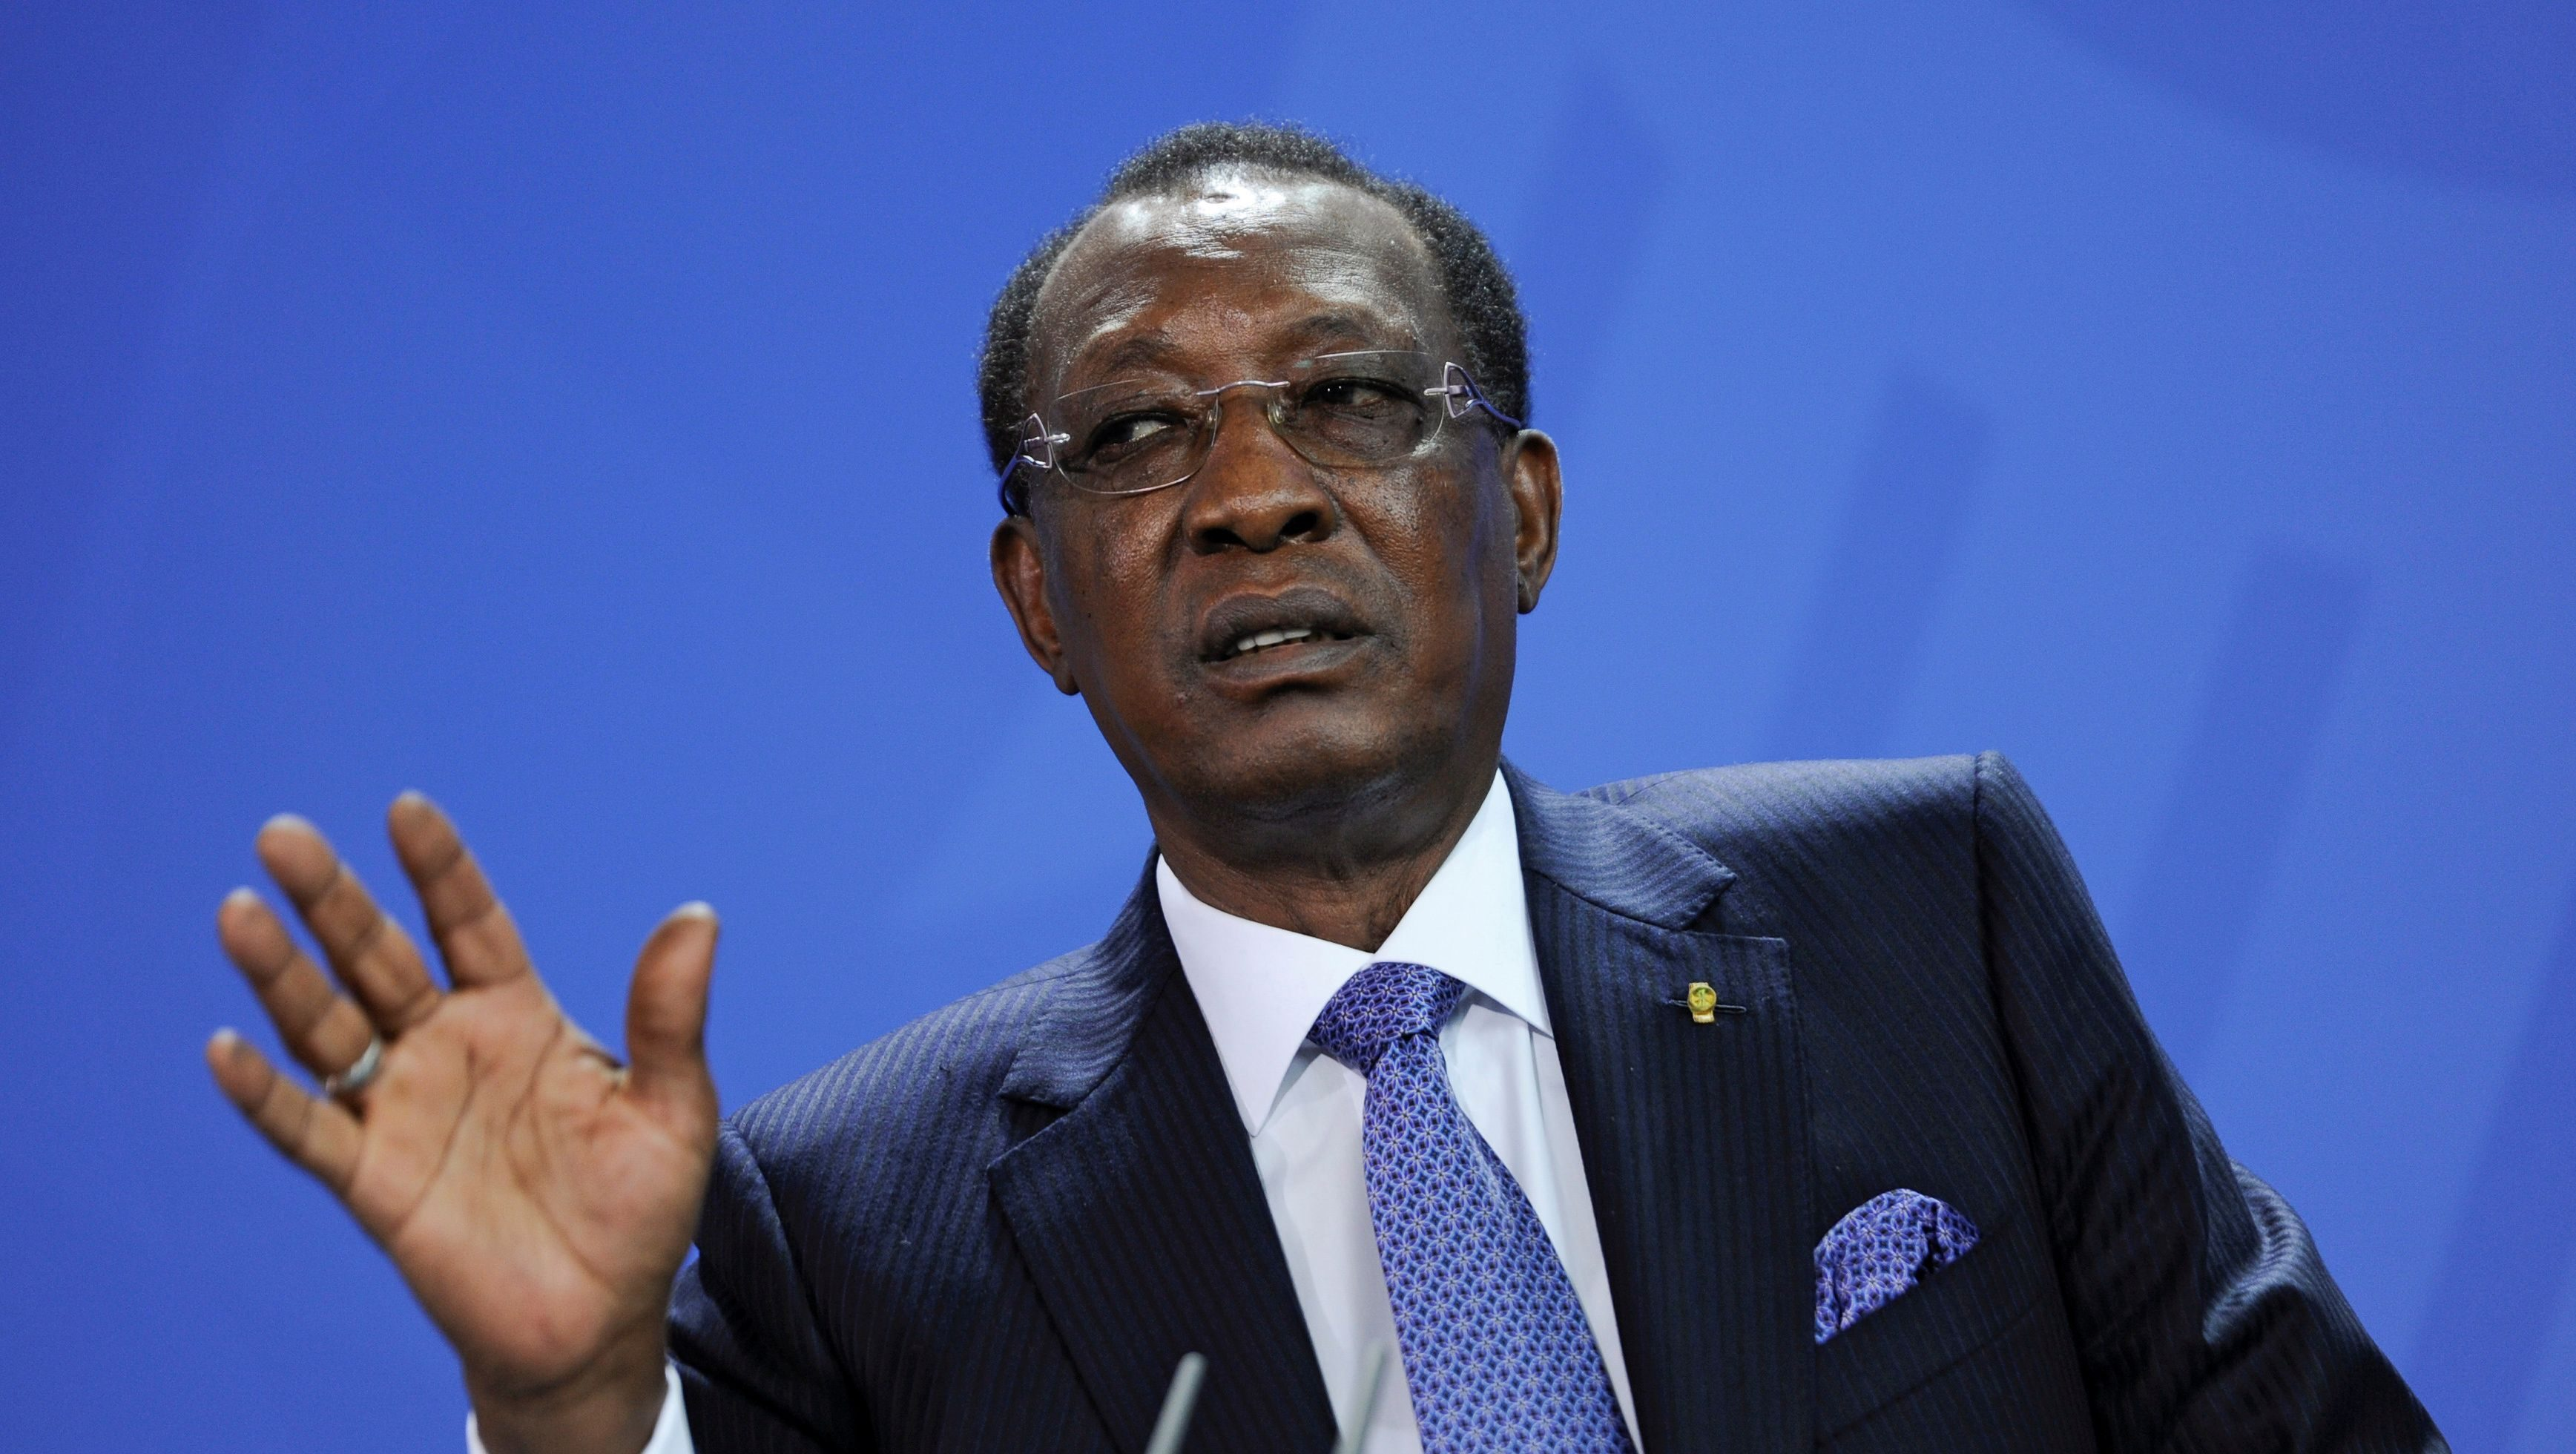 Chad President Idriss Deby addresses the media after a meeting with German Chancellor Angela Merkel at the Chancellery in Berlin, Germany October 12, 2016.